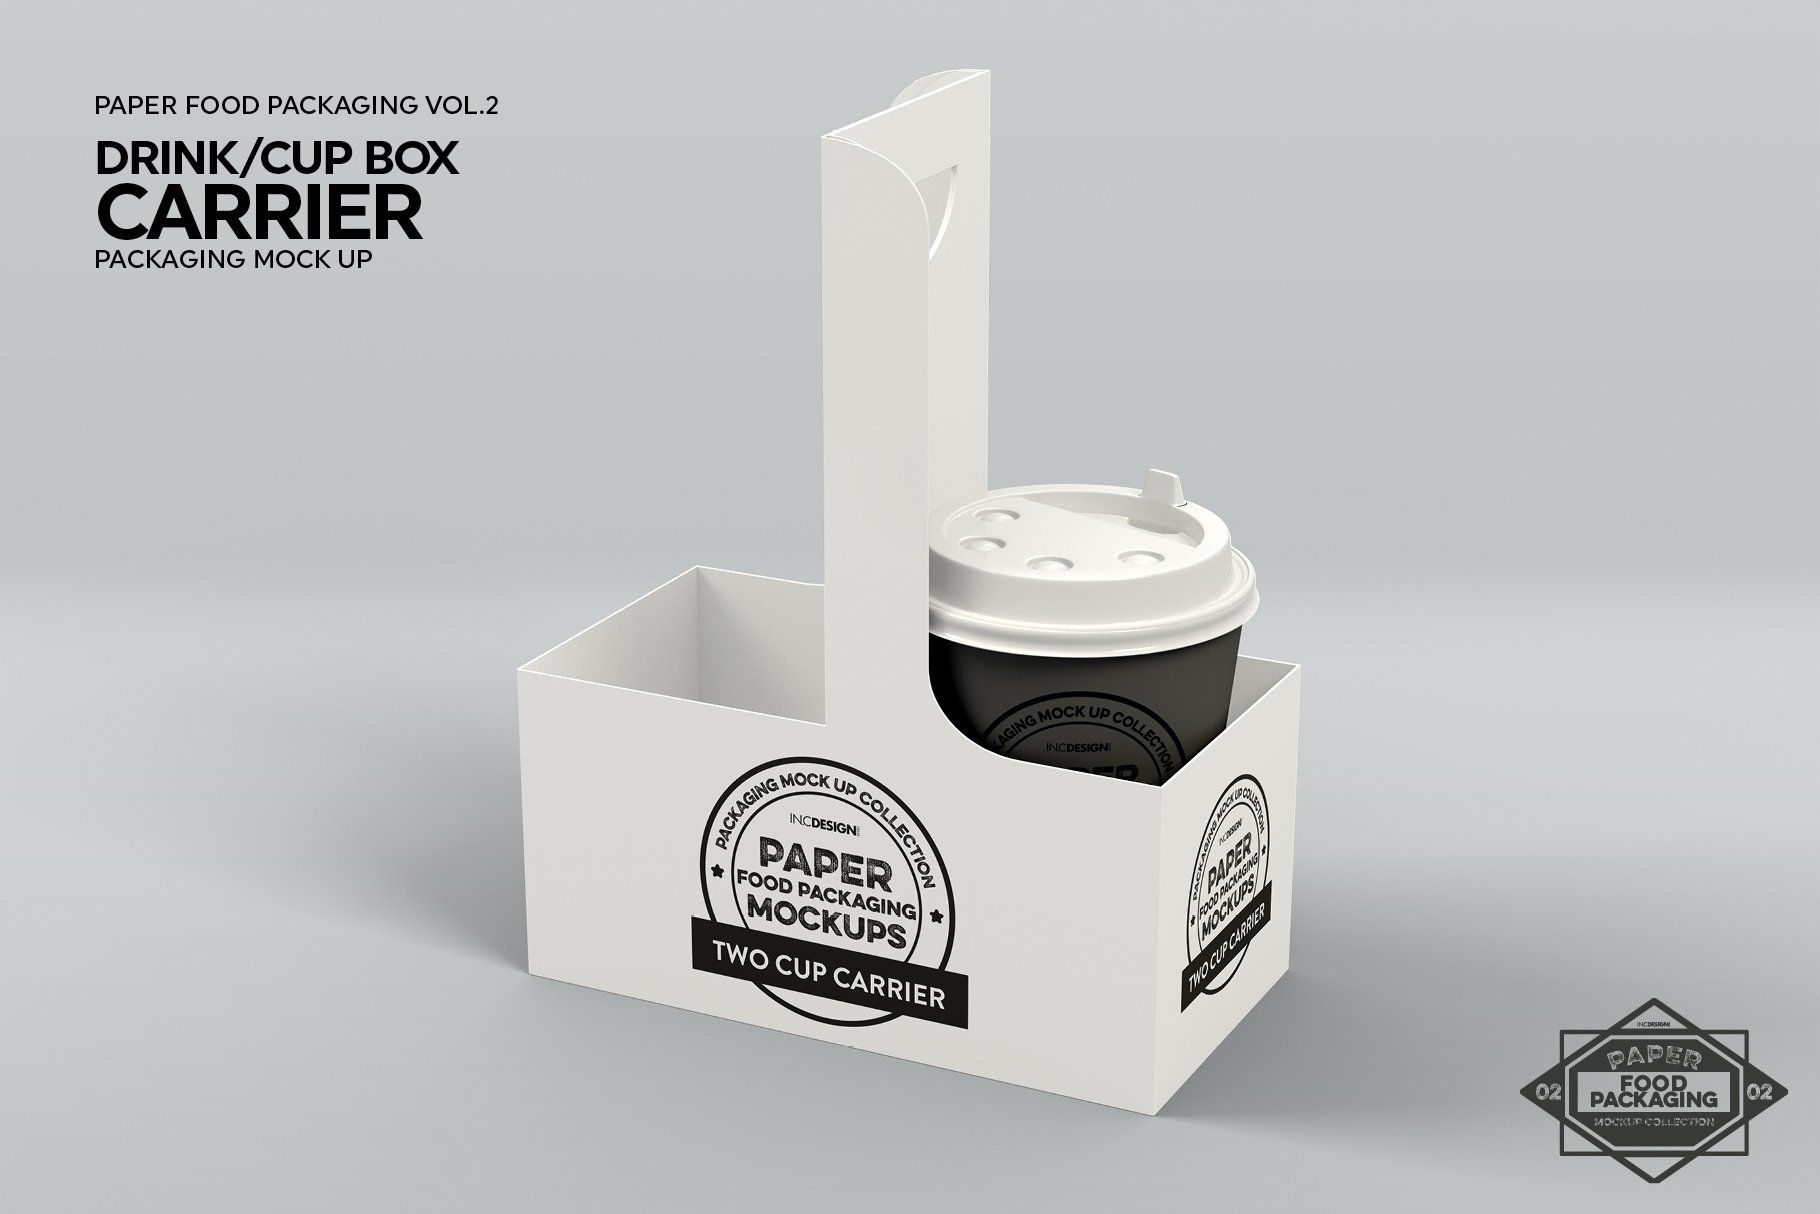 Download Drink Cup Carrier Packaging Mockup Packaging Mockup Drinking Cup Drink Carrier